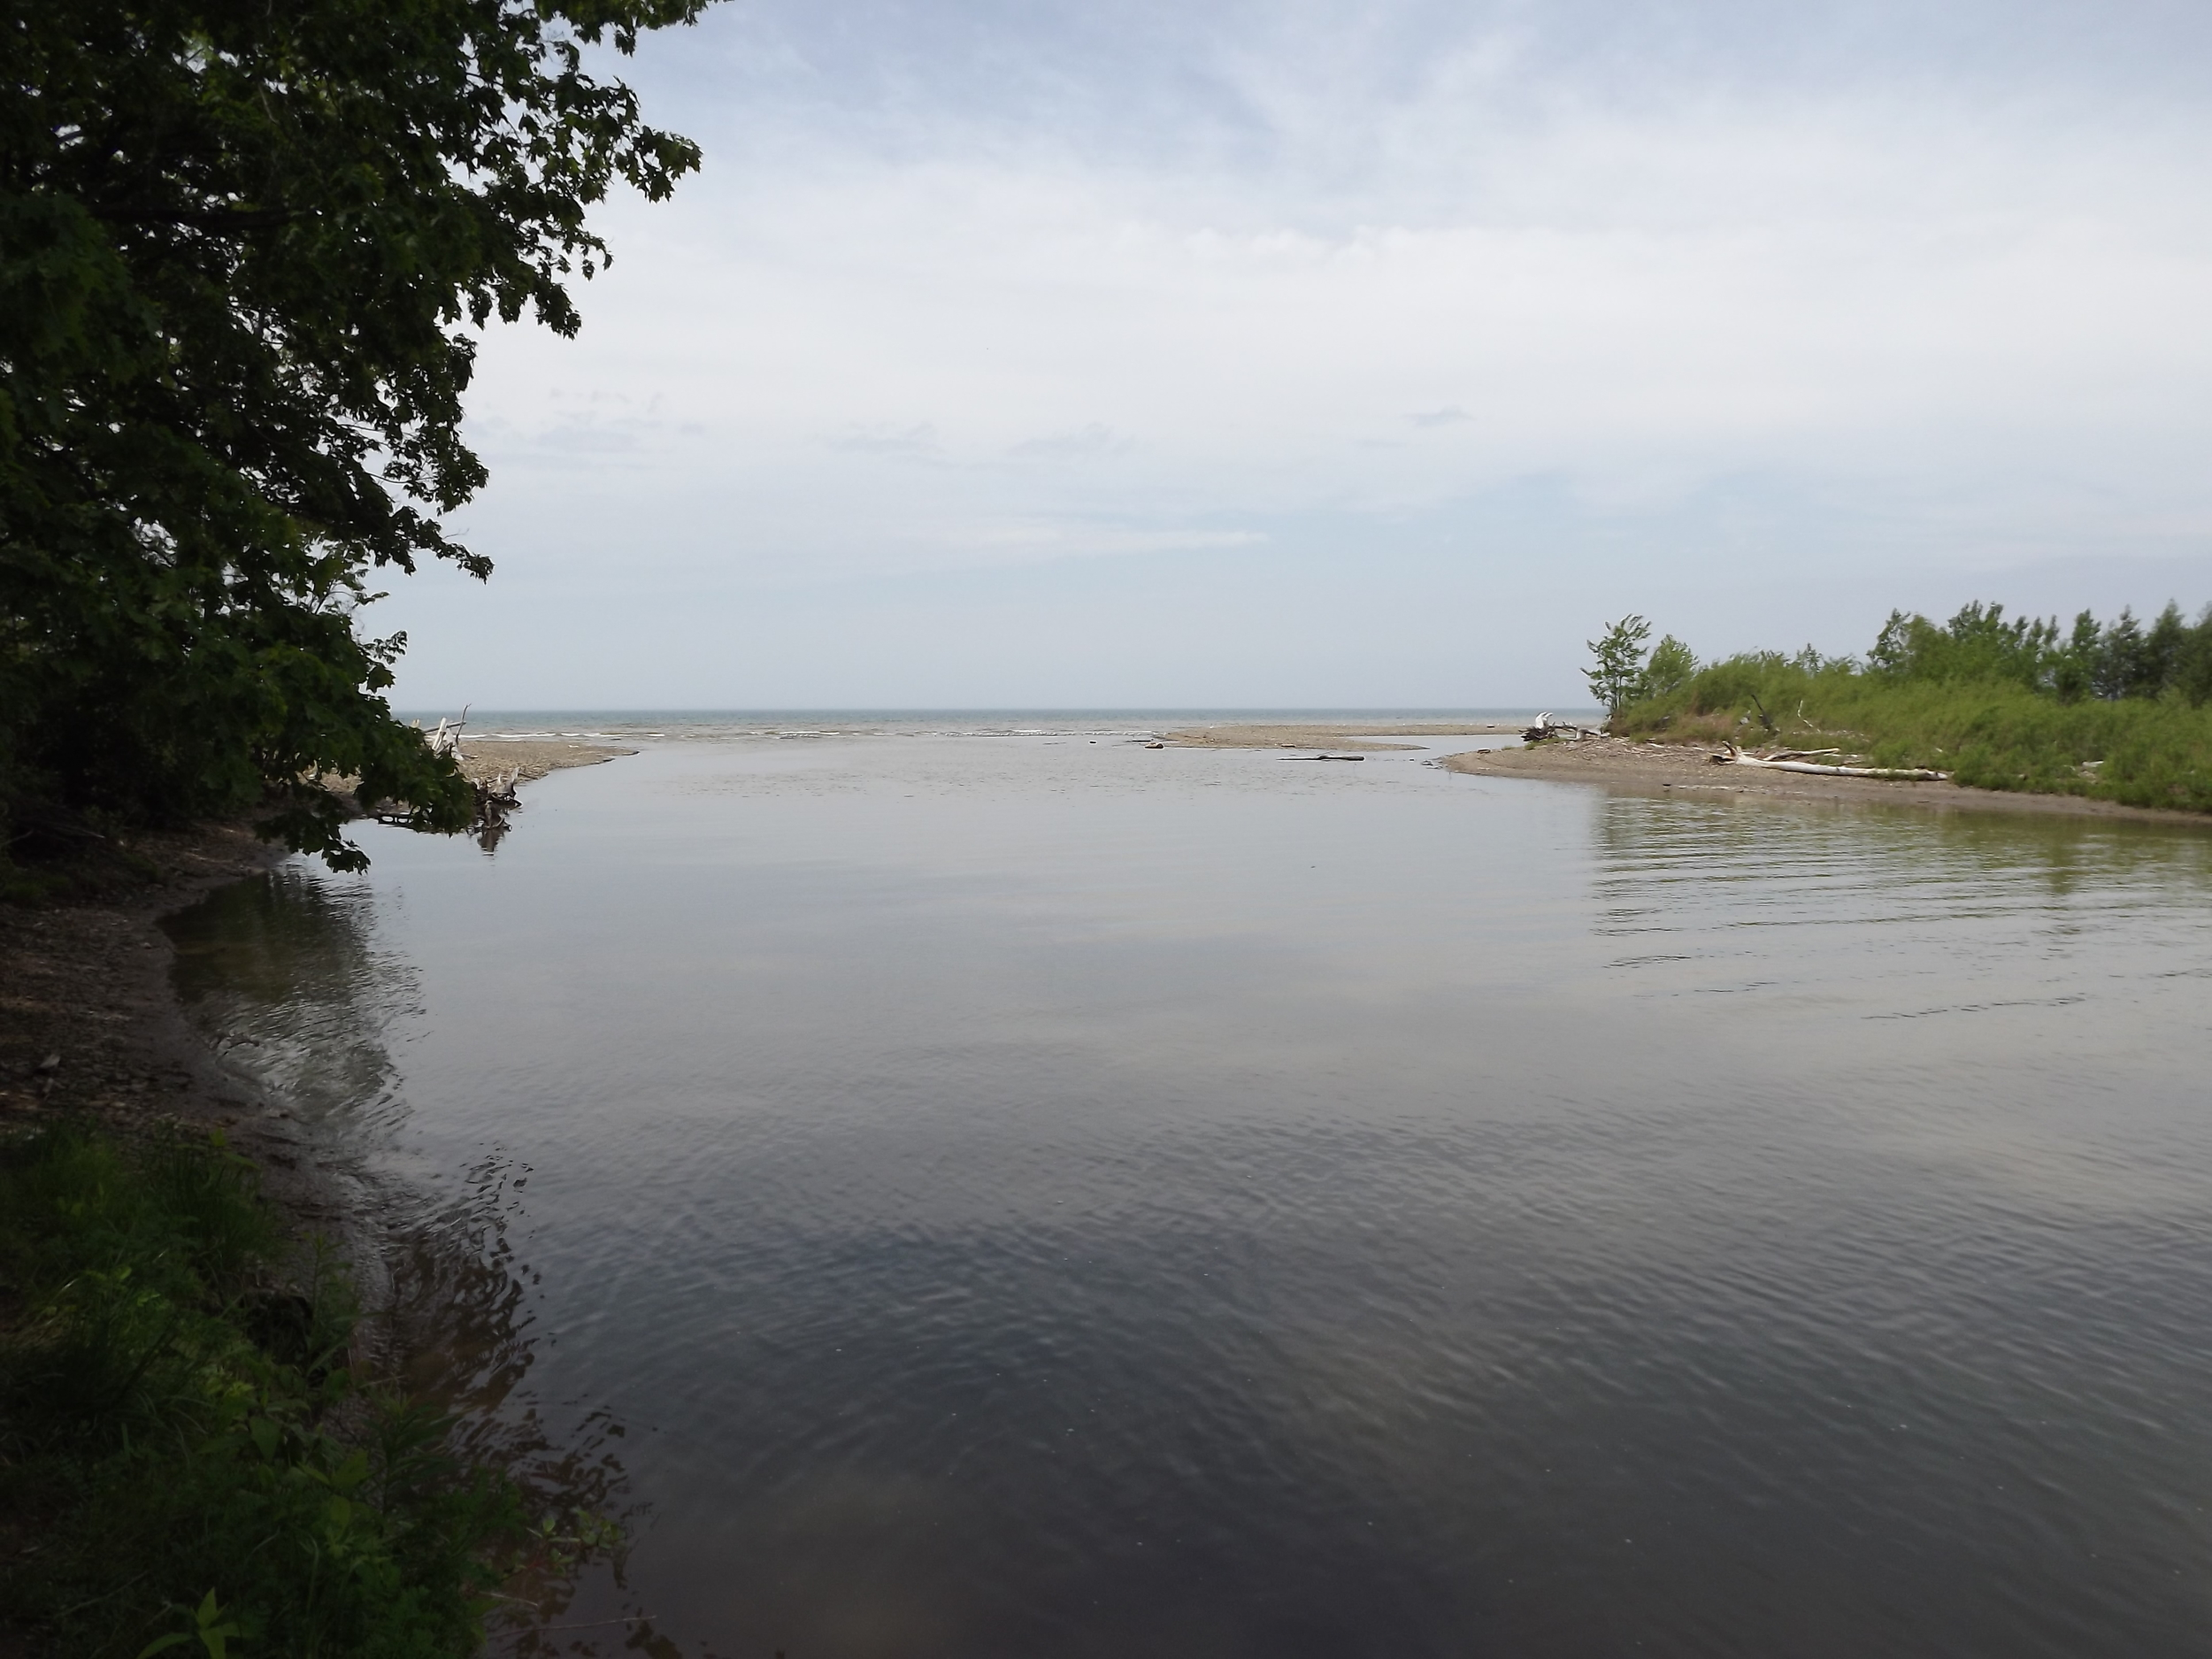 The mouth of Canadaway Creek, near Dunkirk, NY.  5.27.13